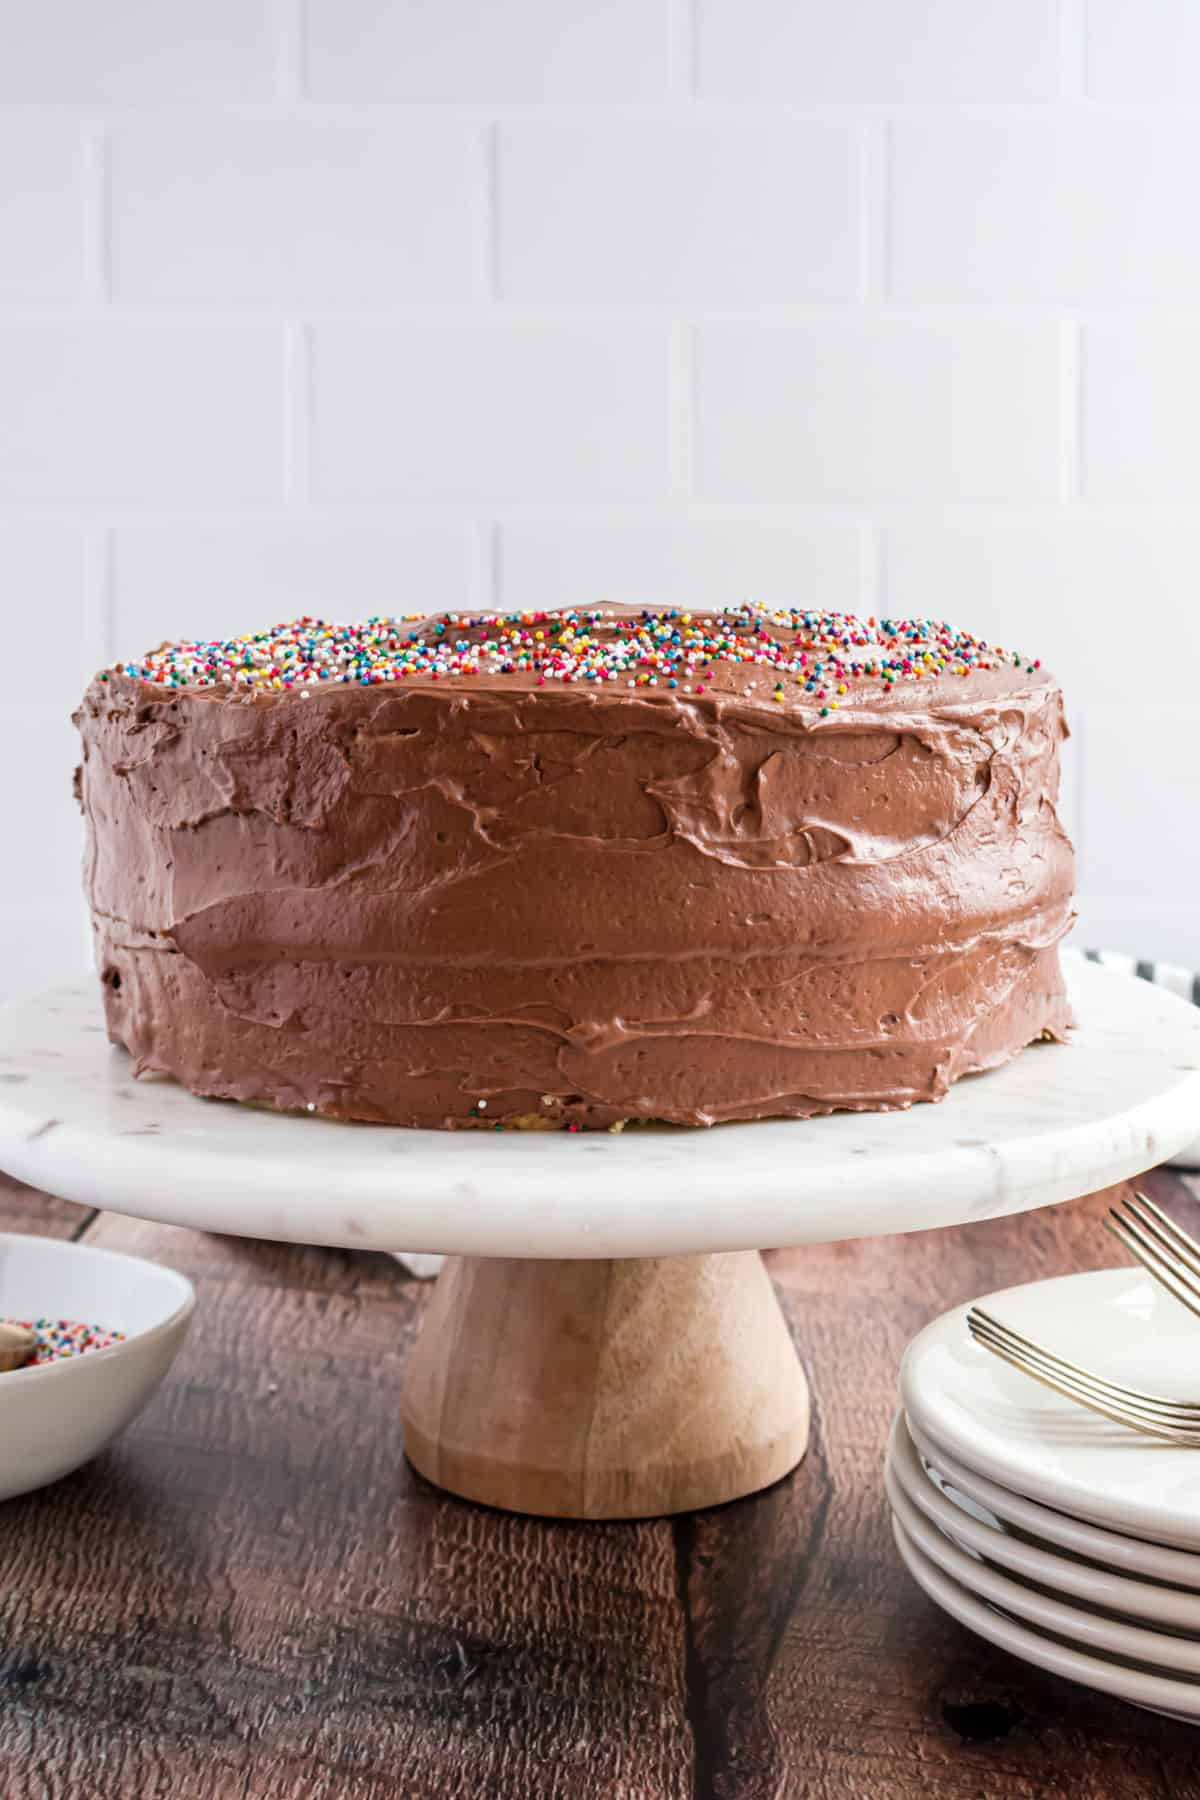 Yellow birthday cake with chocolate frosting and sprinkles on a white cake platter.